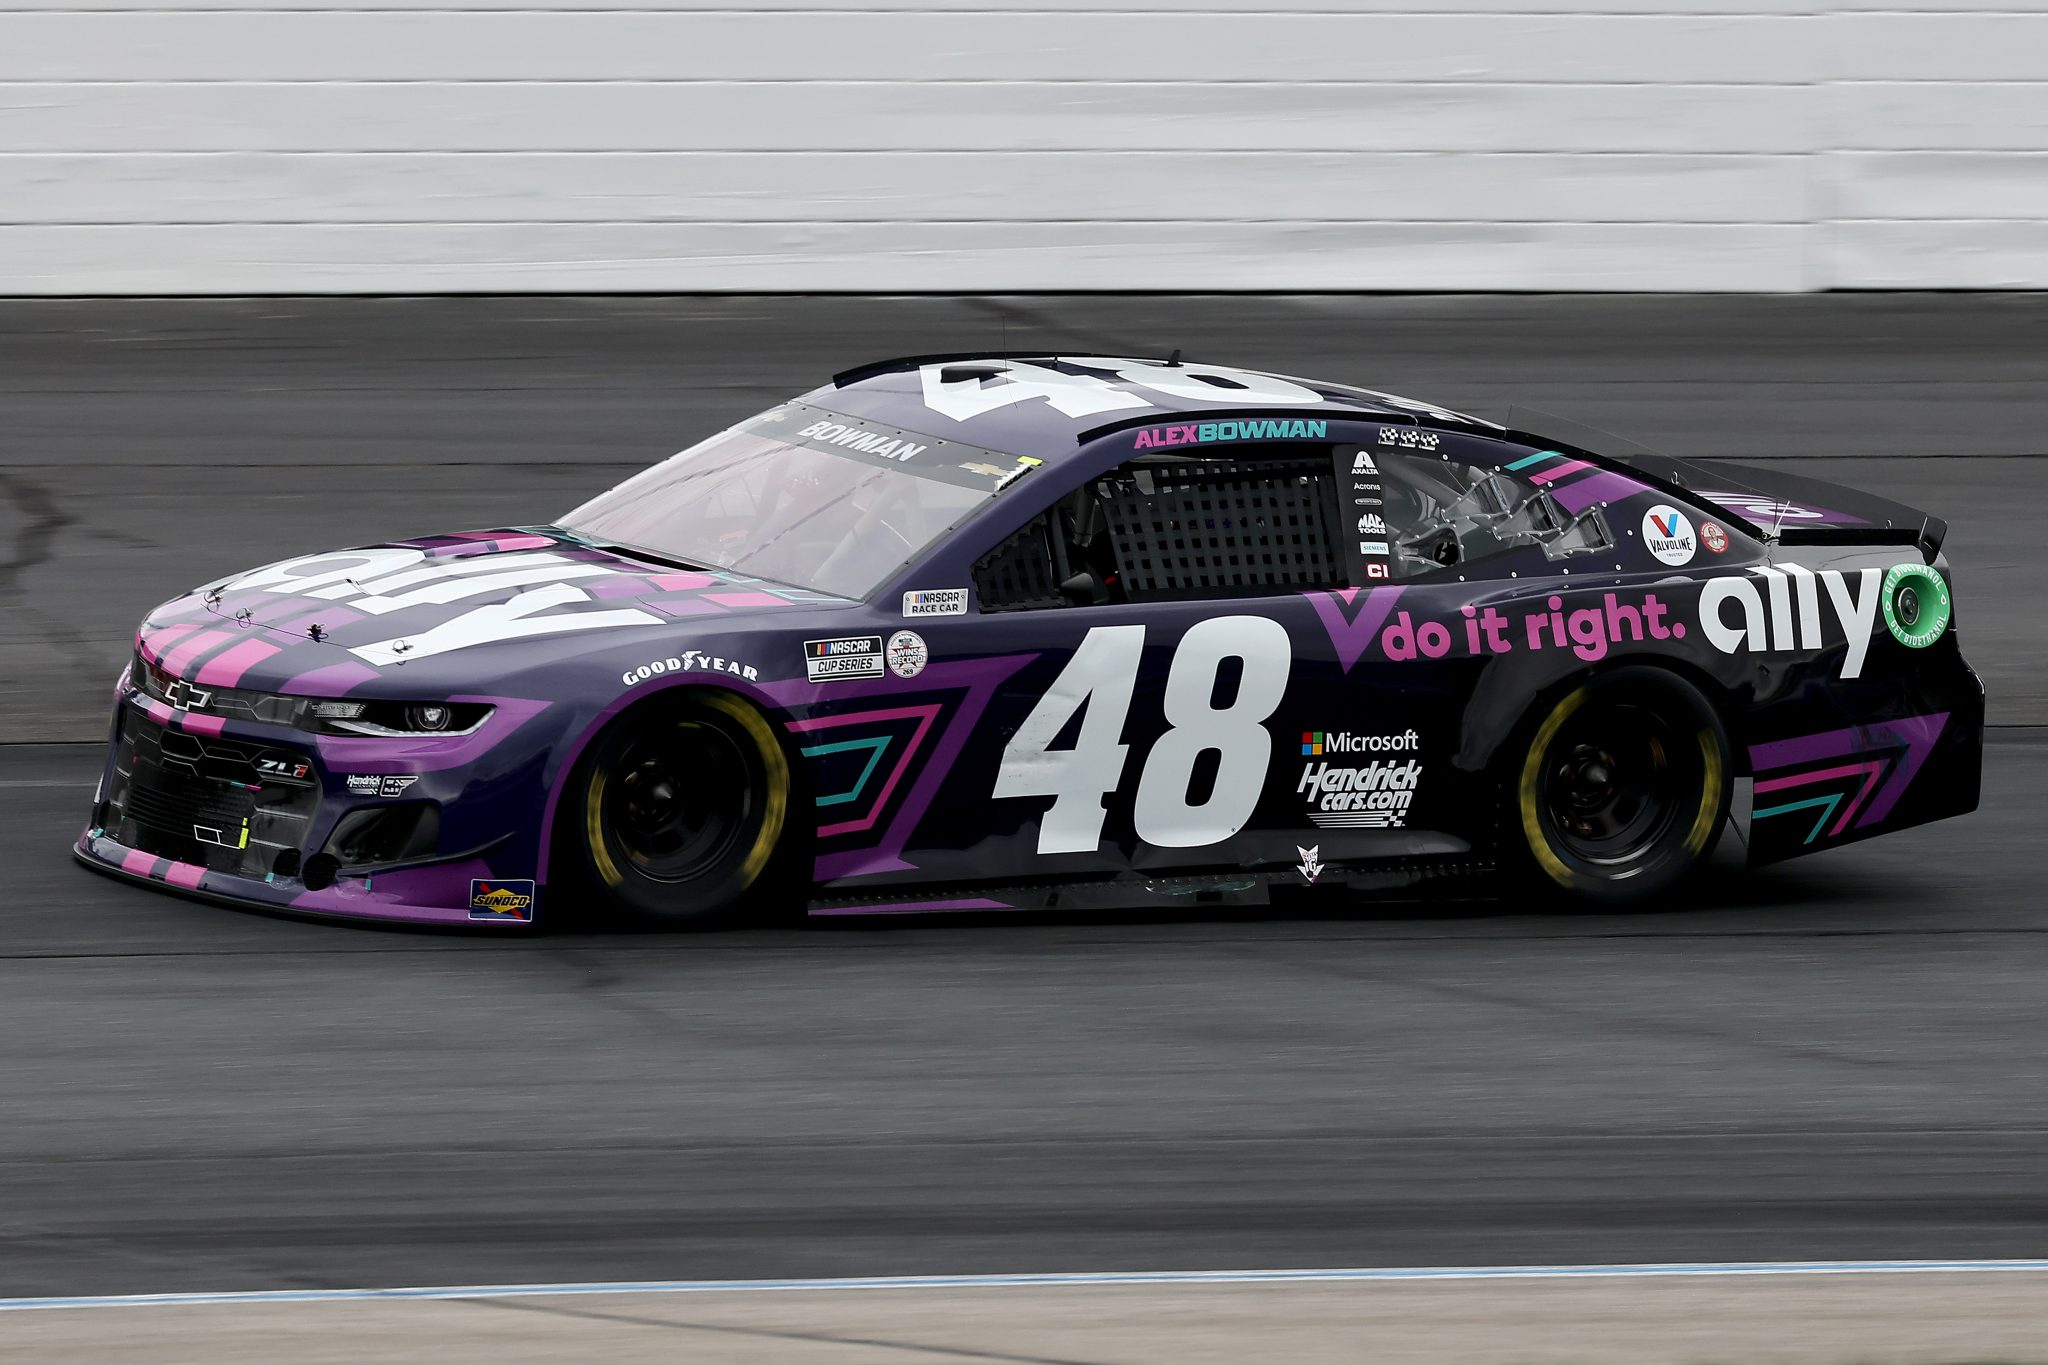 LOUDON, NEW HAMPSHIRE - JULY 18: Alex Bowman, driver of the #48 Ally Chevrolet, drives during the NASCAR Cup Series Foxwoods Resort Casino 301 at New Hampshire Motor Speedway on July 18, 2021 in Loudon, New Hampshire. (Photo by James Gilbert/Getty Images) | Getty Images